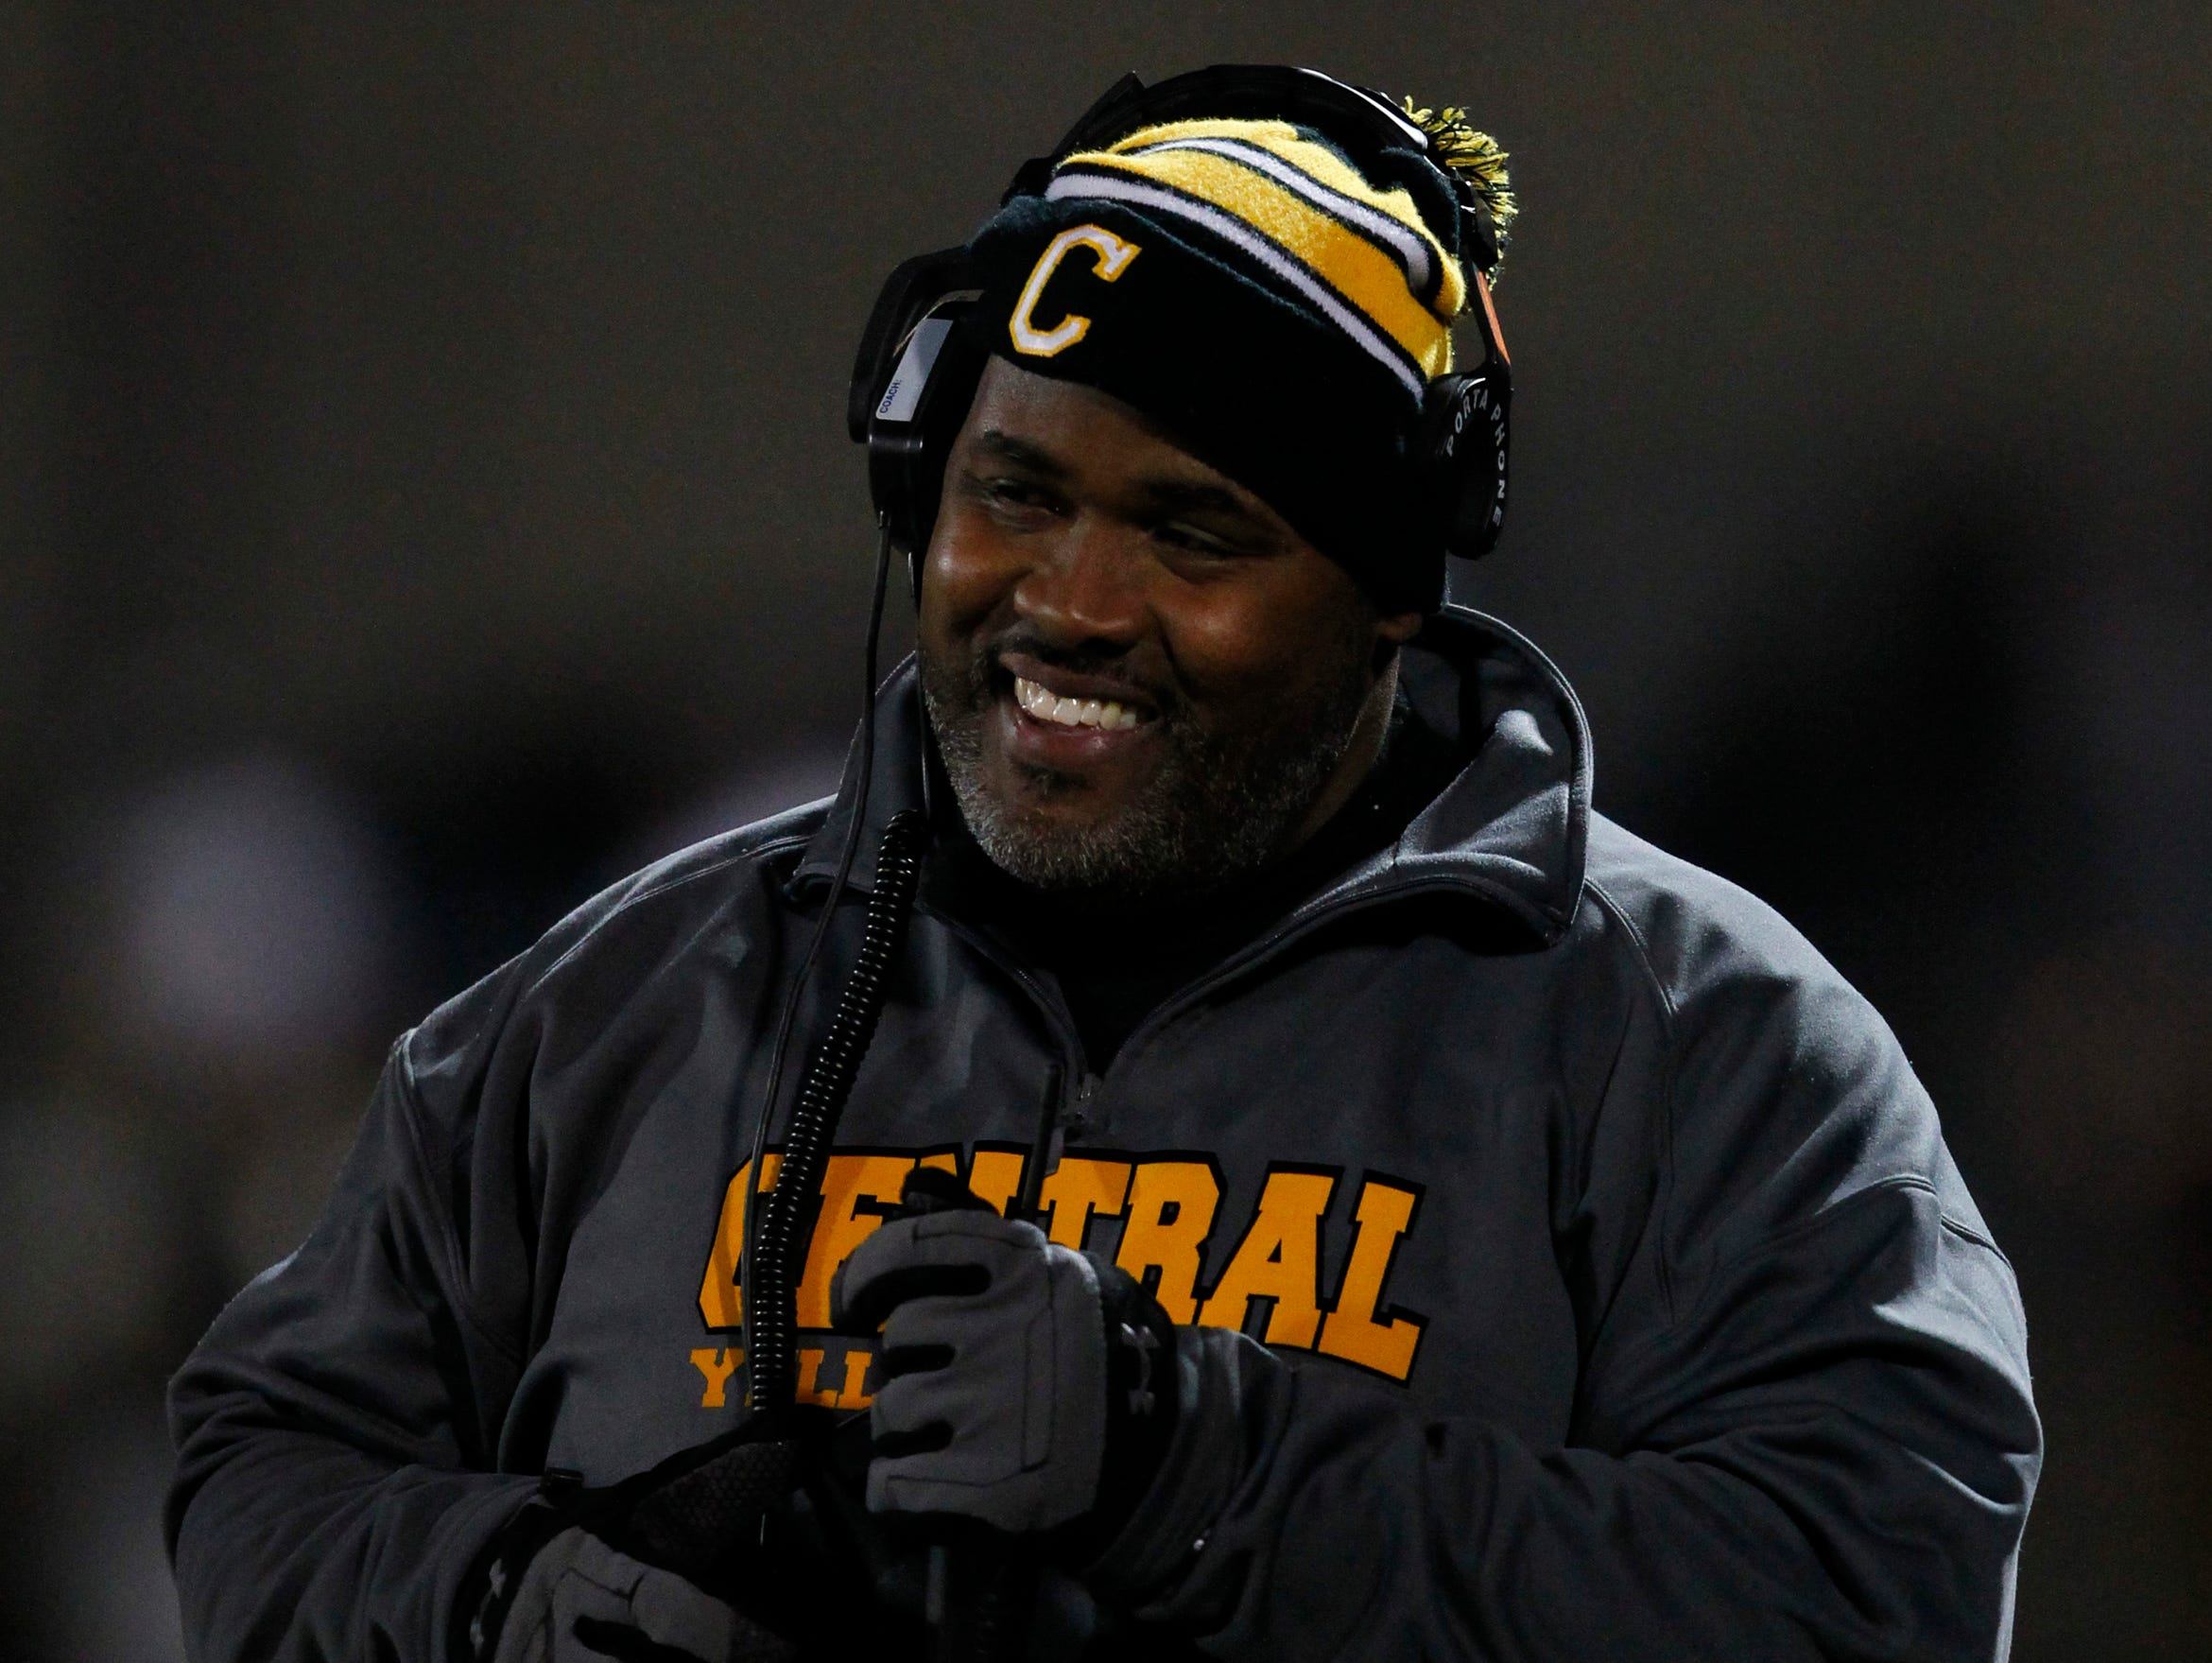 Central High School head coach Tyrran Scroggins reacts to his team play against South Warren High School during the first half of play at Central High School in Louisville, Kentucky. November 28, 2014